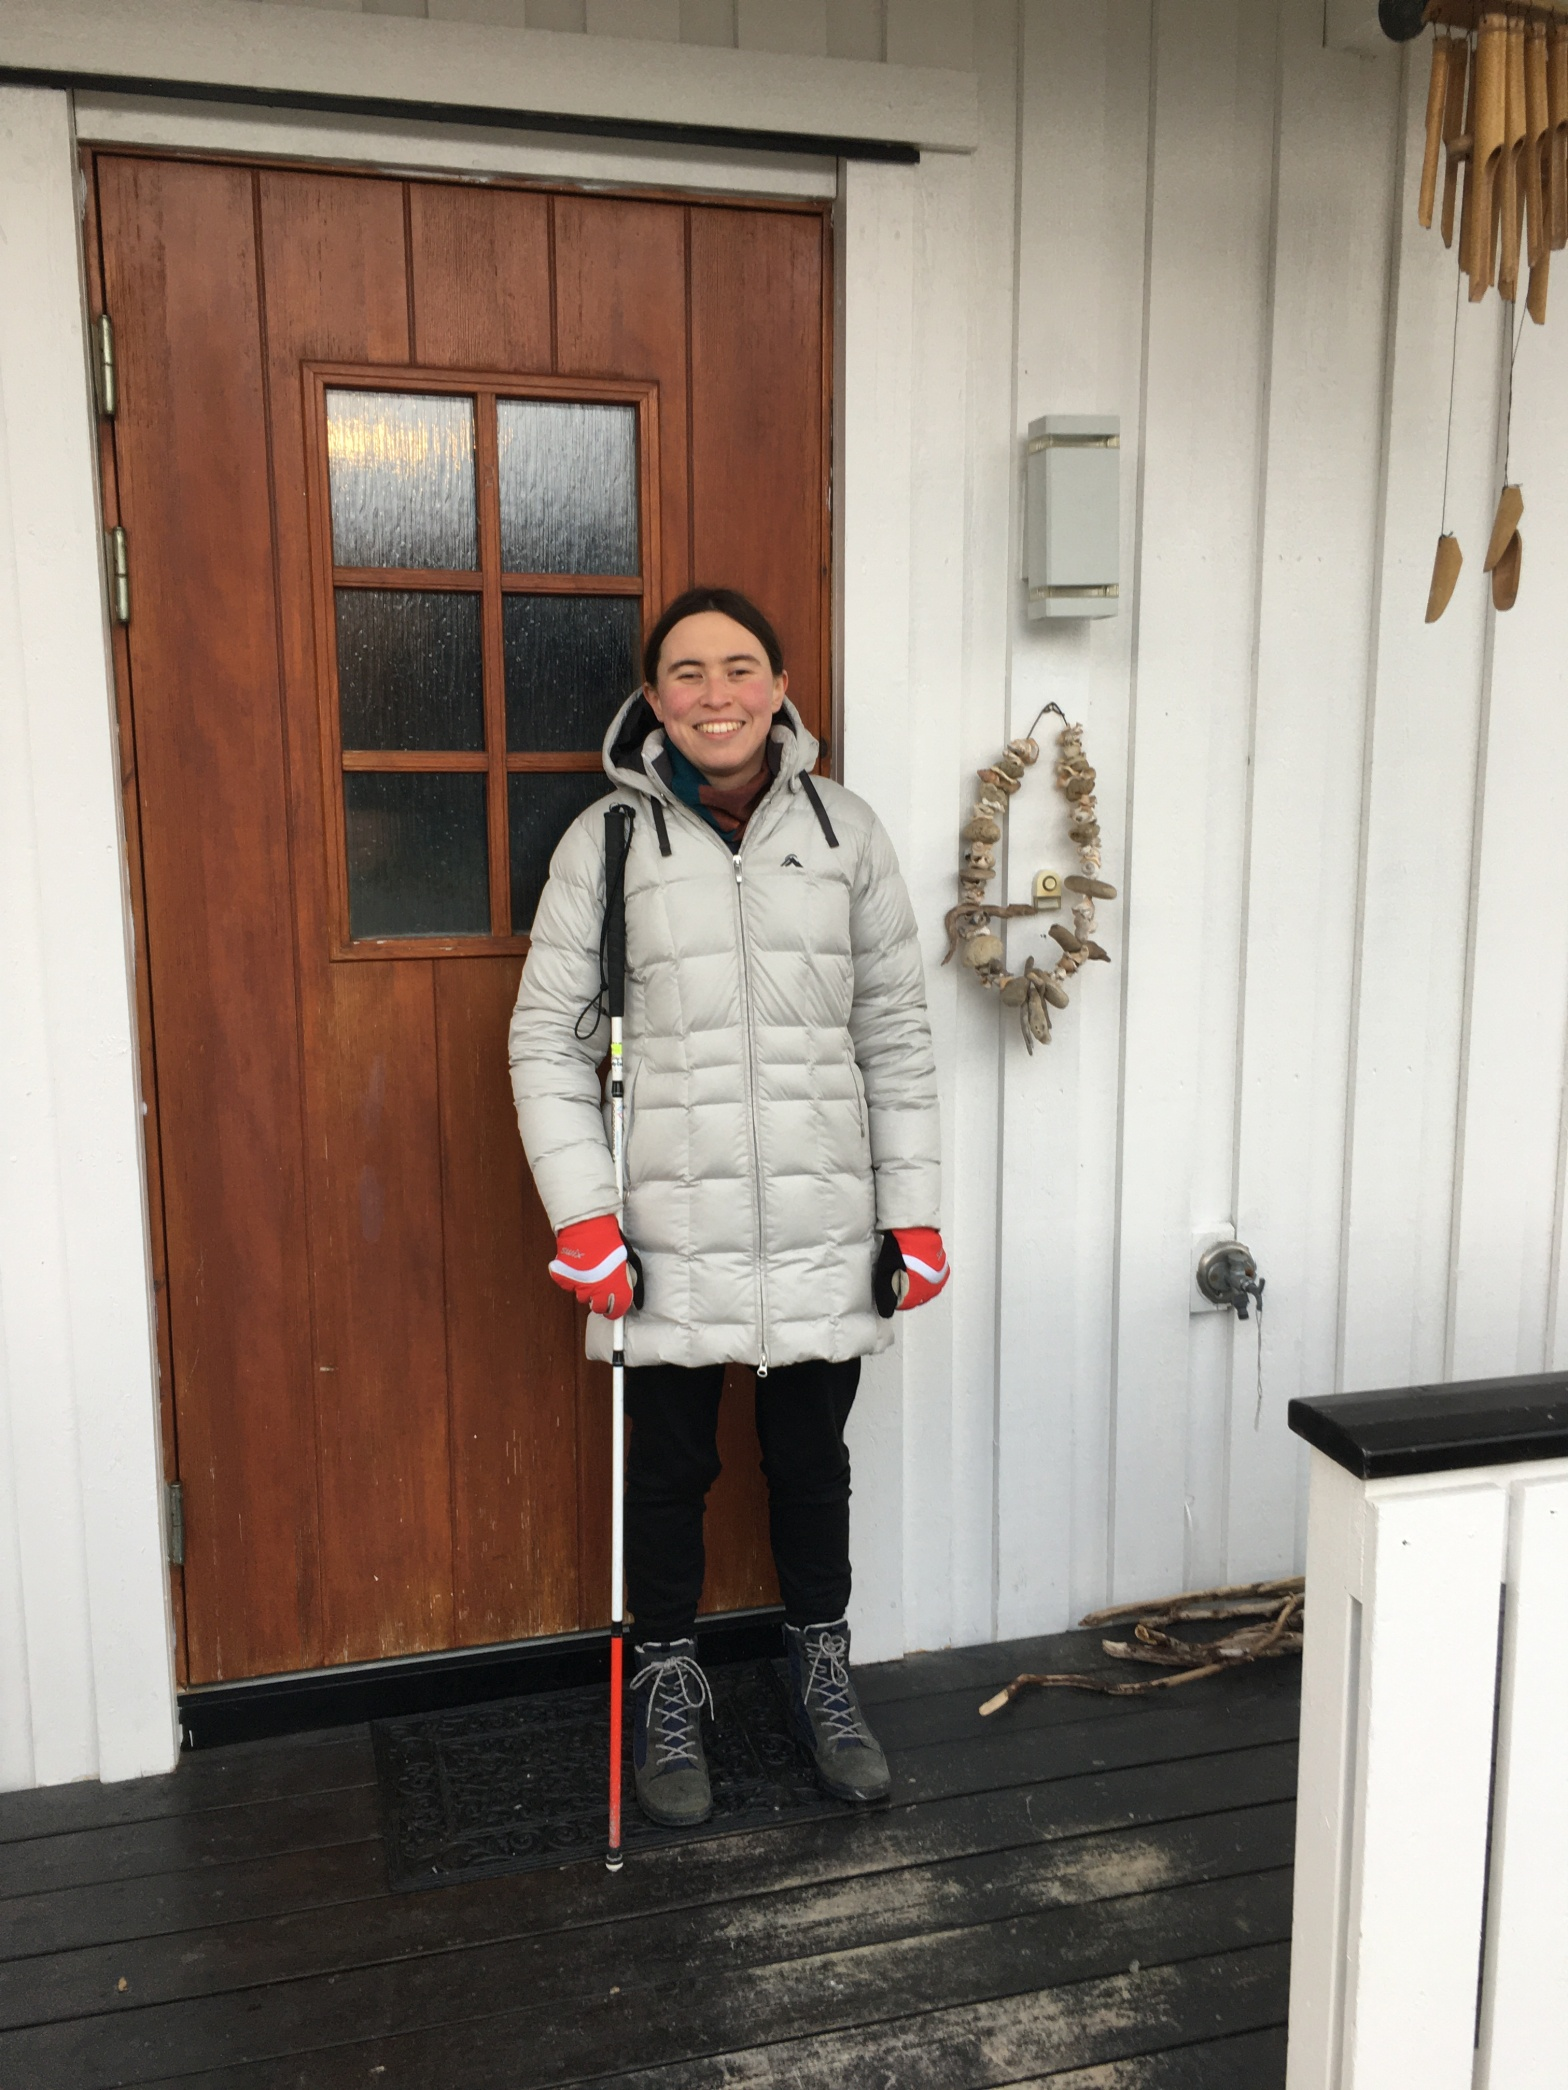 I'm standing bundled up in a winter jacket and scarf outside my new mostly wooden front door, which has a kind of wreath of beach shells and drift wood hanging to my right. I'm a Eurasian-presenting white woman with brown hair.